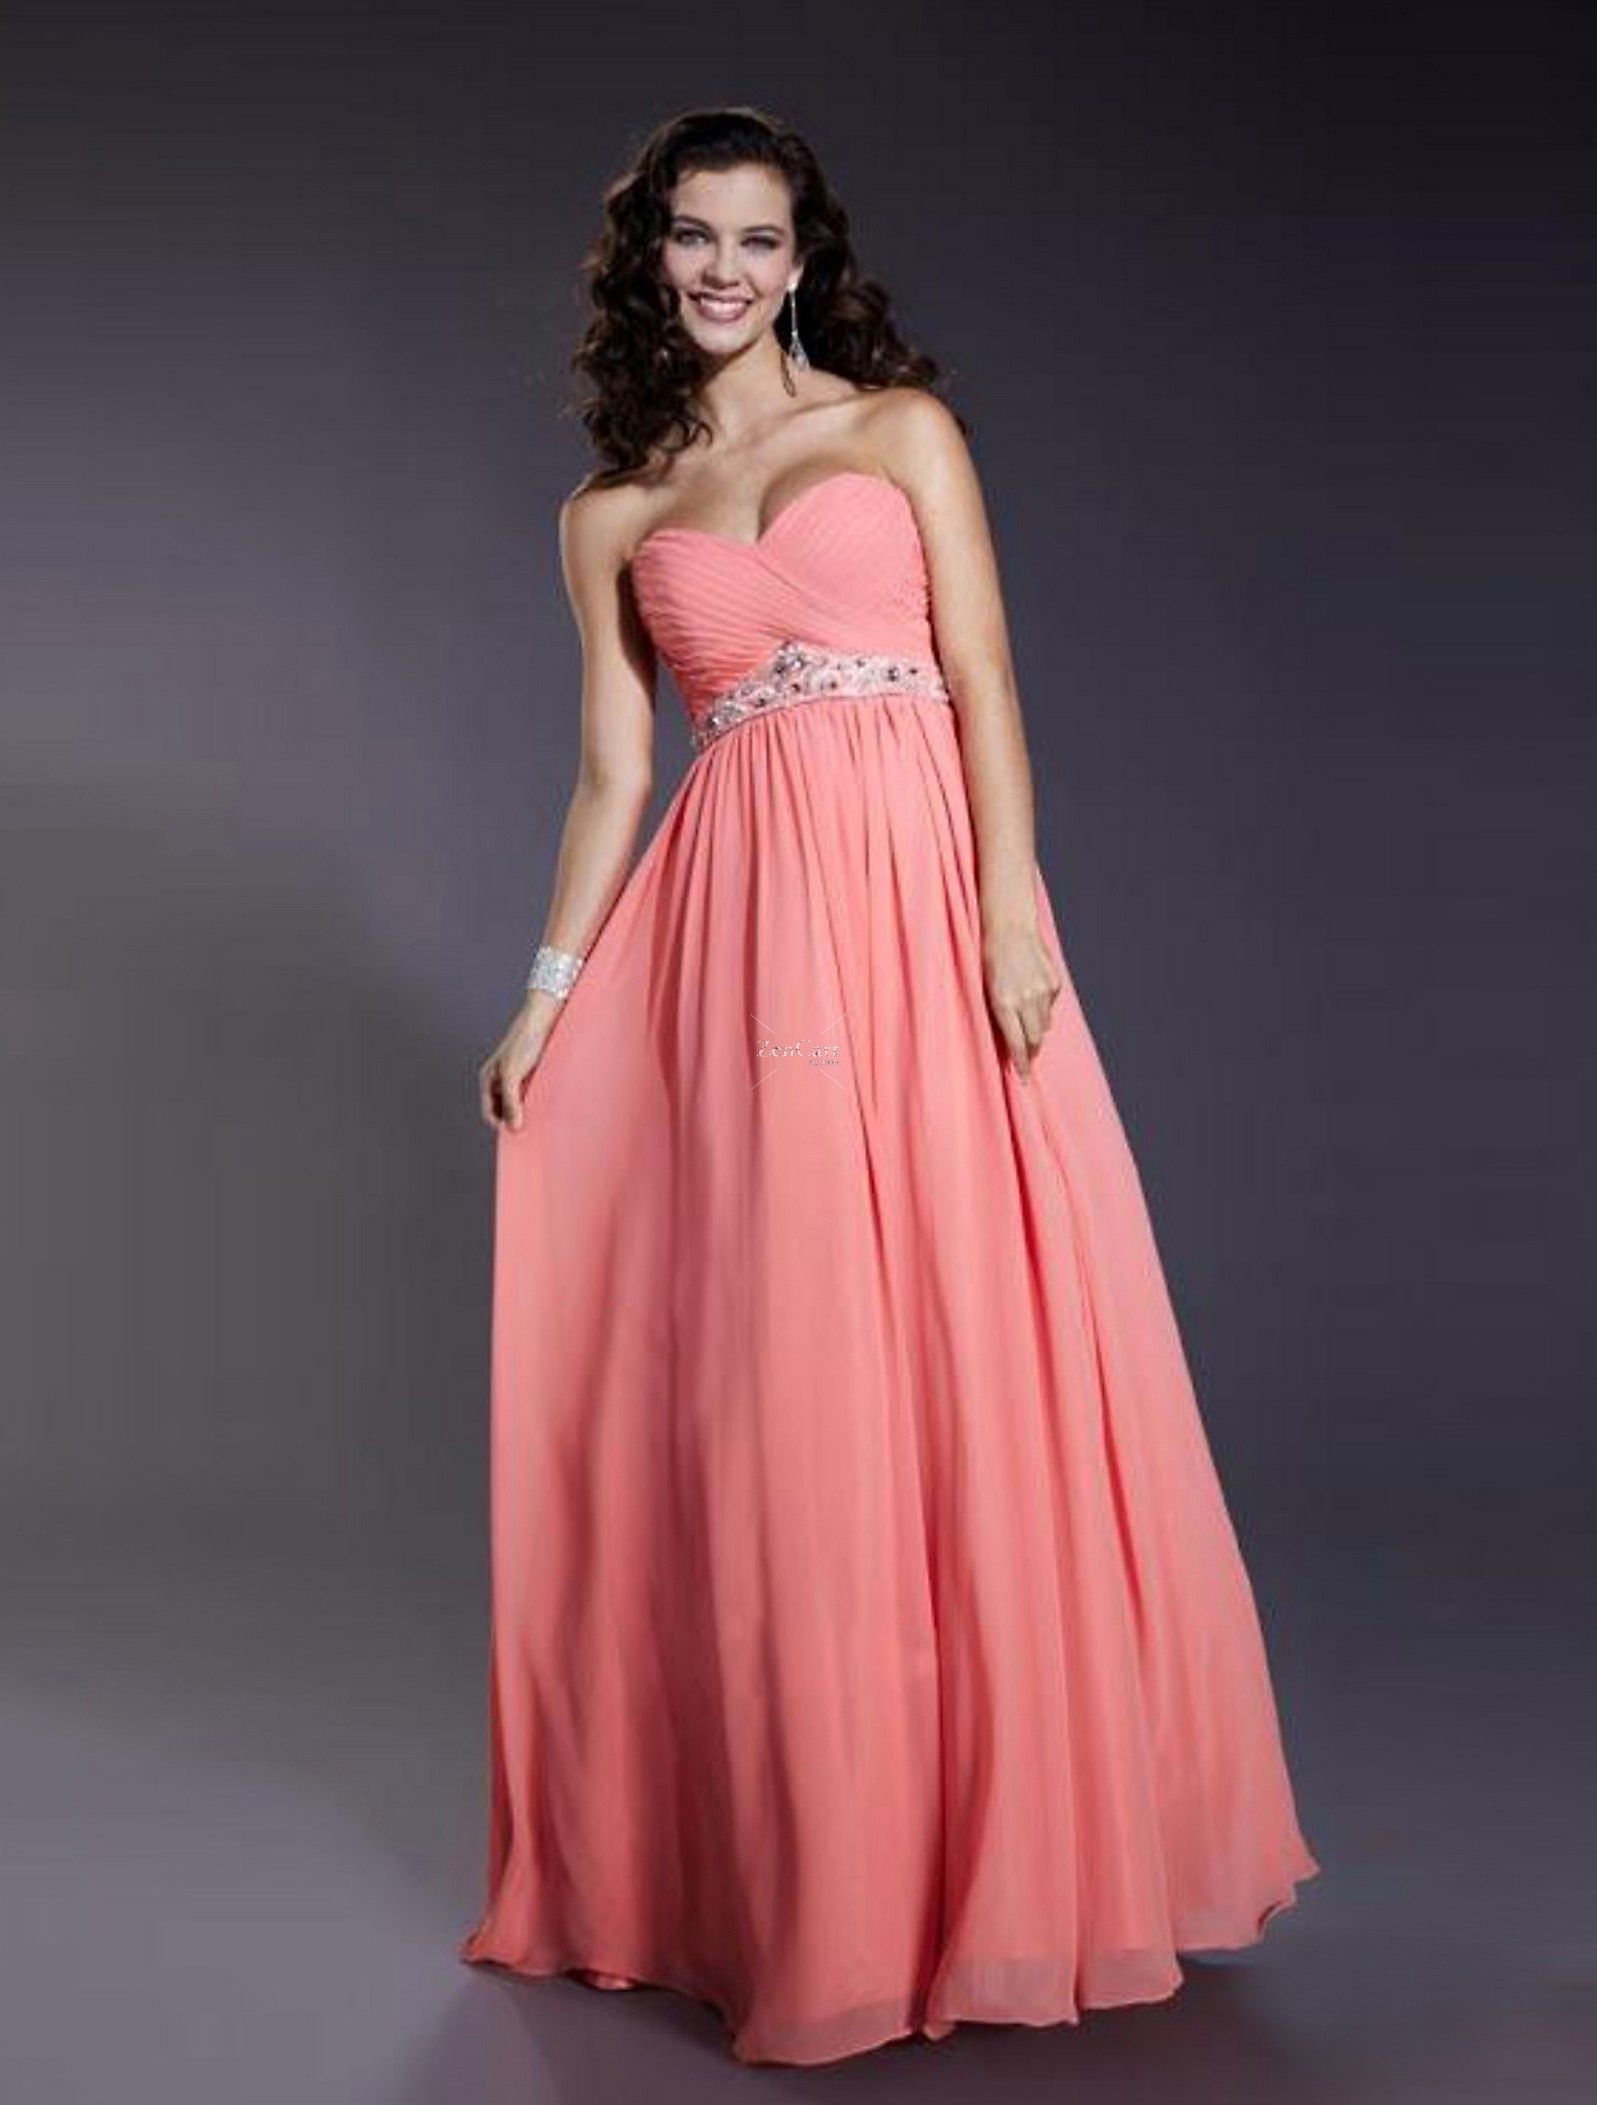 bridesmaid dresses salmon color | ... Dress/Evening Dress LPD84670 ...